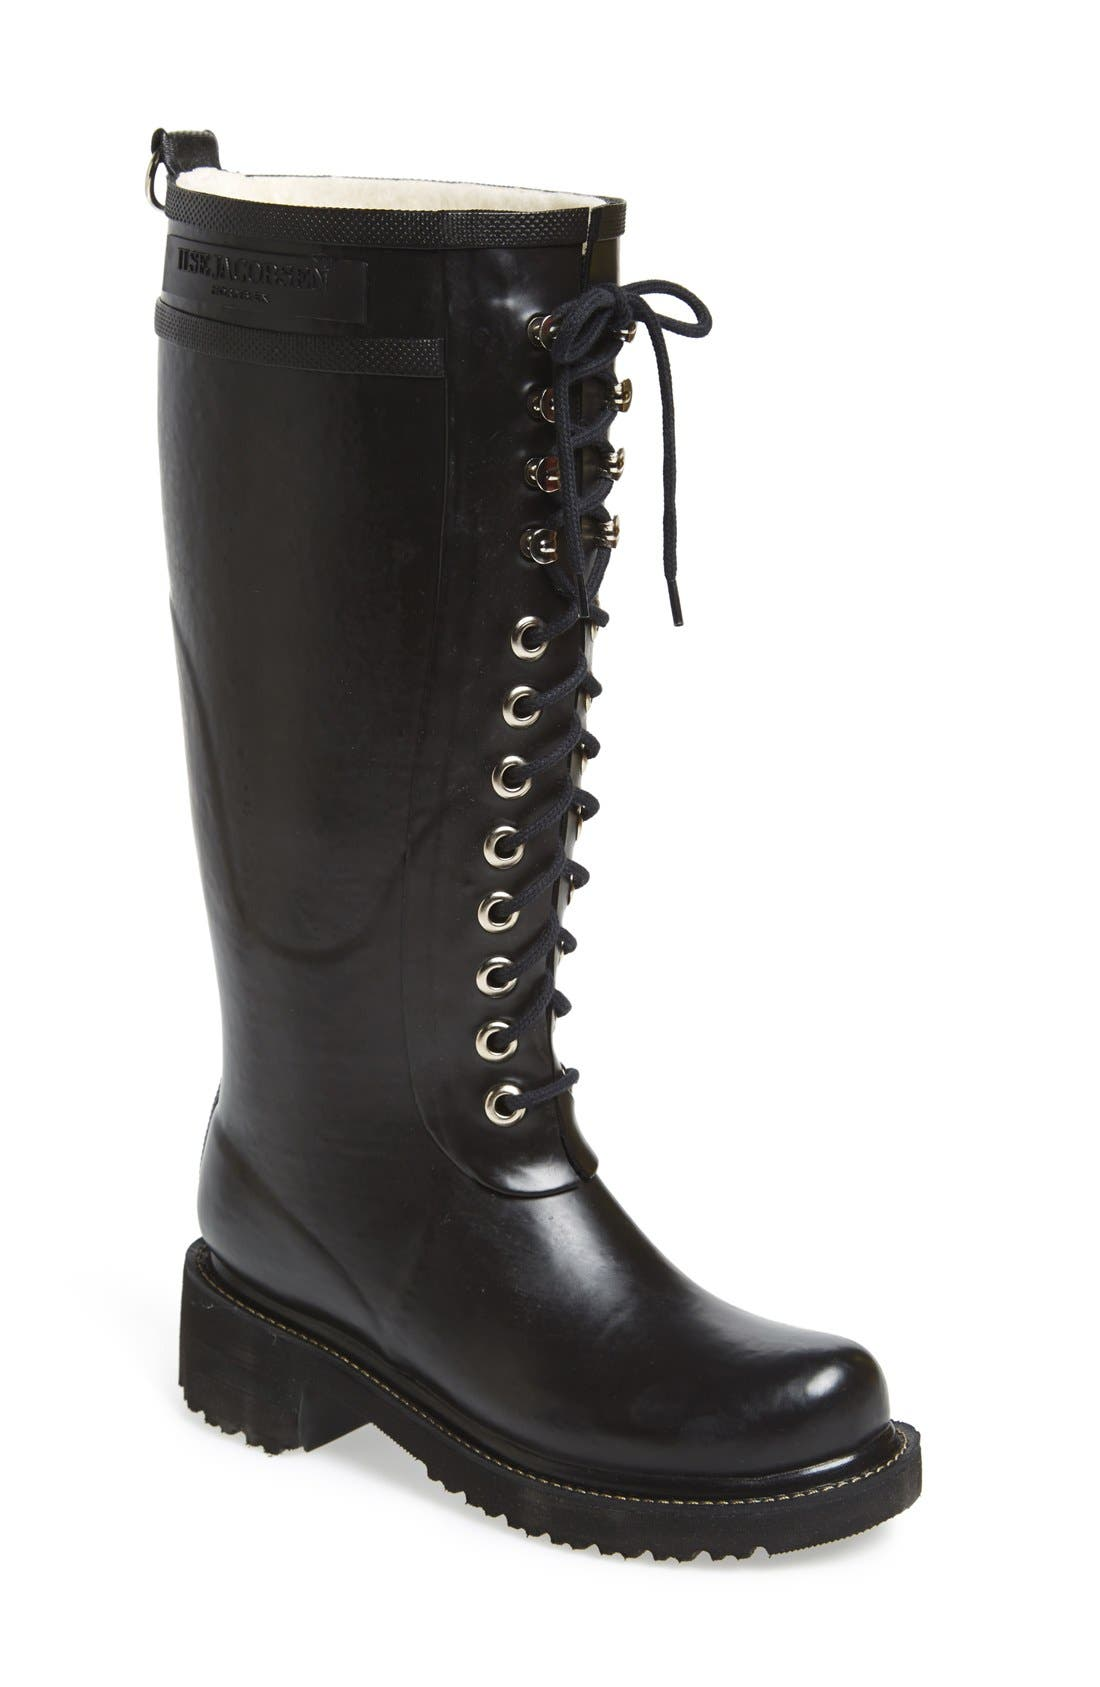 Main Image - Ilse Jacobsen Waterproof Lace-Up Snow/Rain Boot (Women)